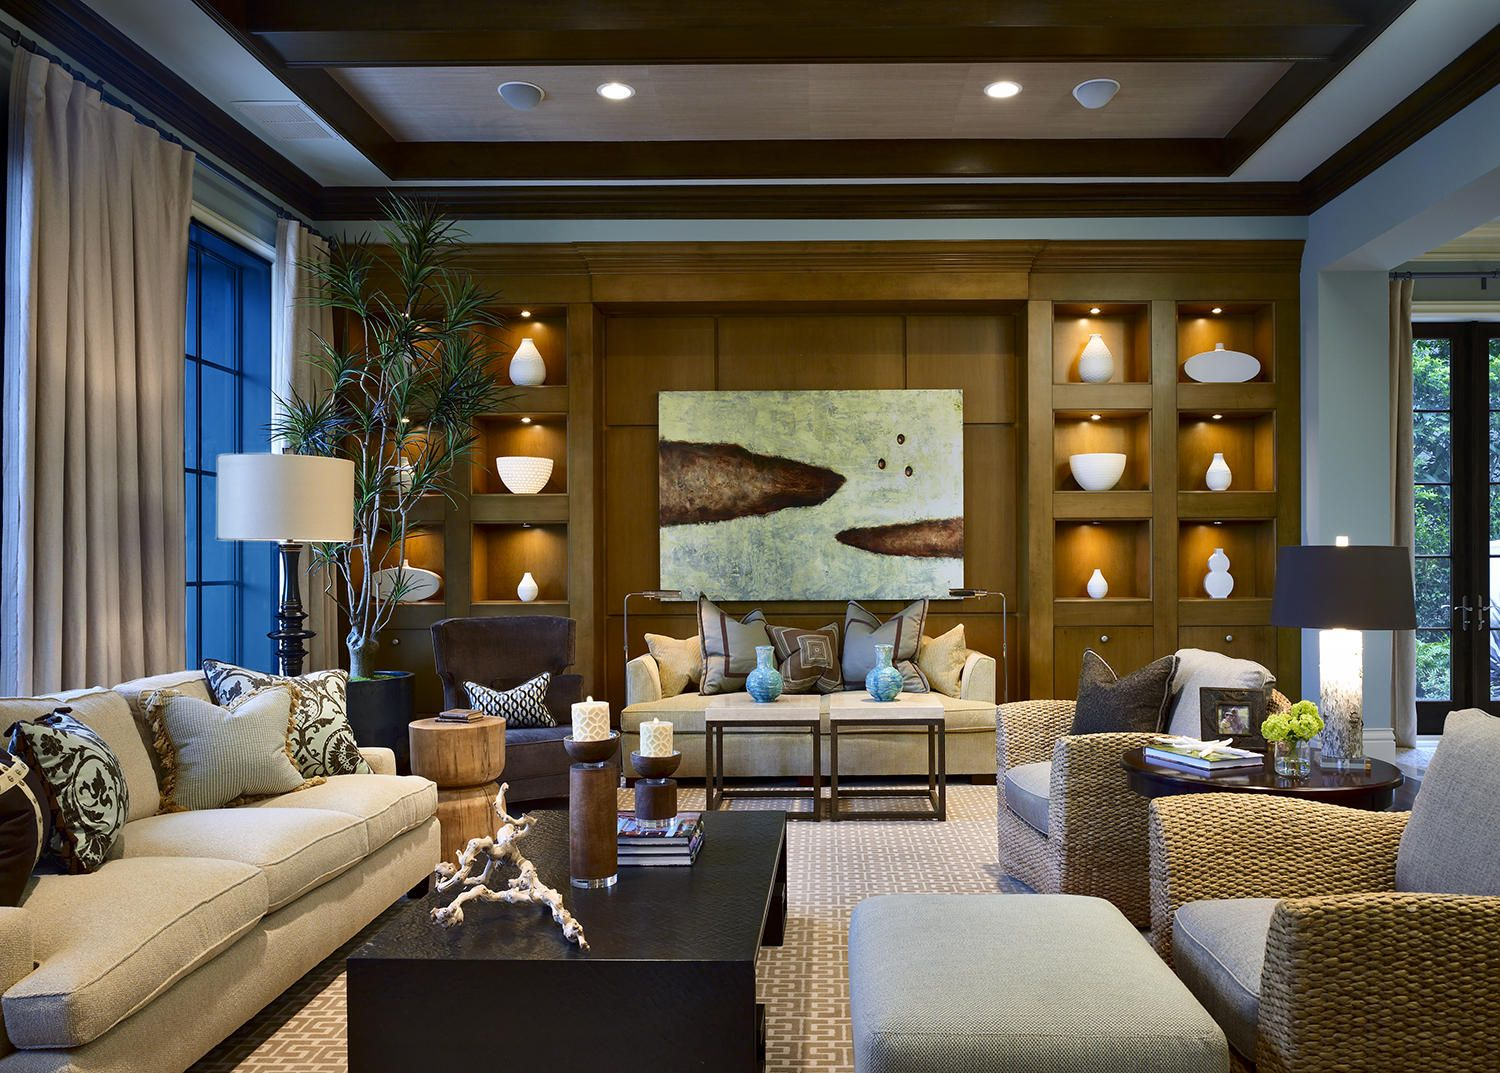 MarcMichaels Interior Design Inc Private Residence 5 in Boca